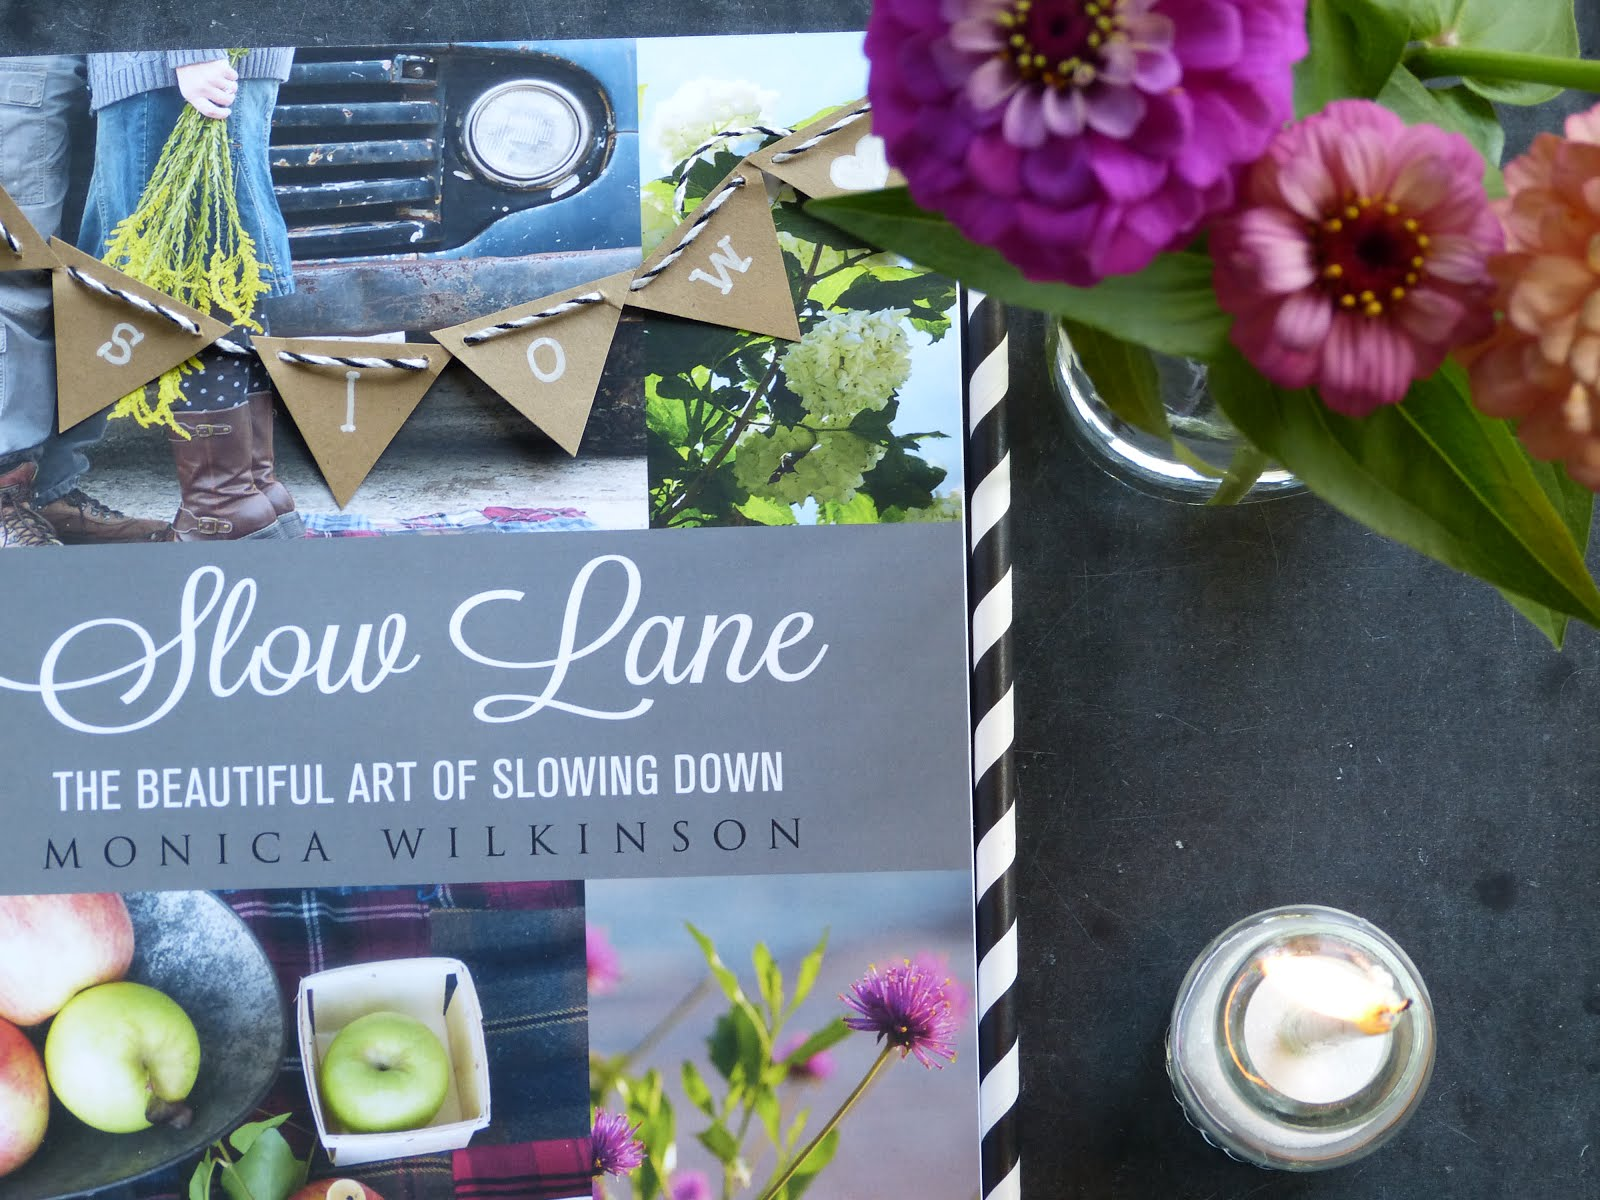 Free Printables for Slow Lane!